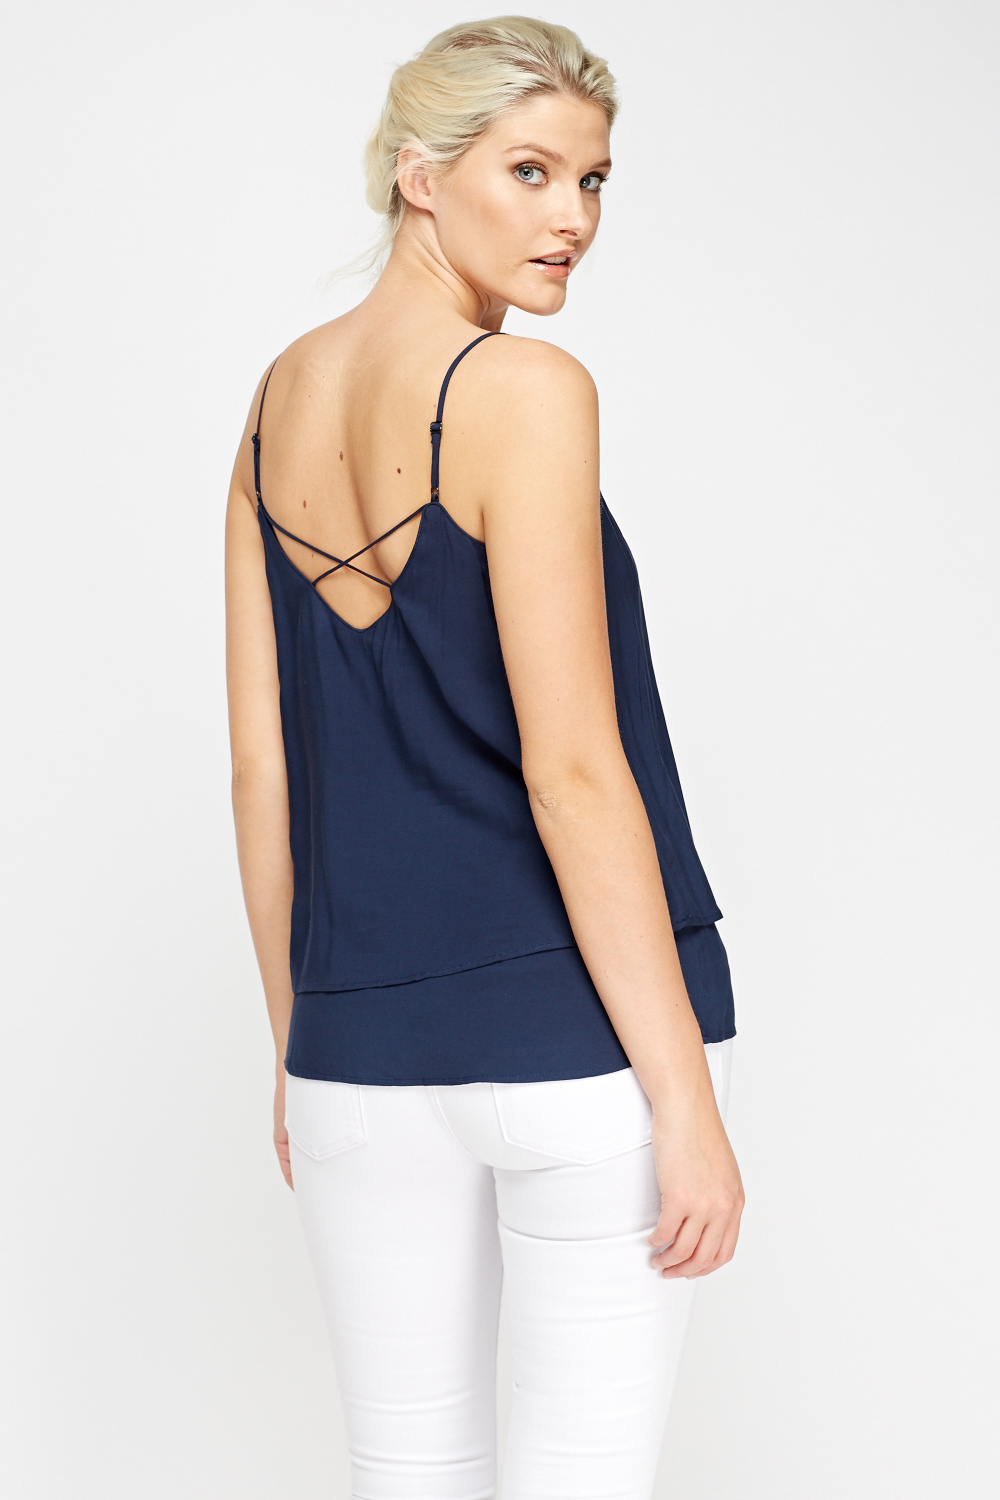 Old Navy has a collection of basic cami that provides a stylish look and a comfortable fit. Choose from basic cami in a wide selection of fabulous styles and colors. Skip to top navigation Skip to shopping bag Skip to main content Skip to footer links.